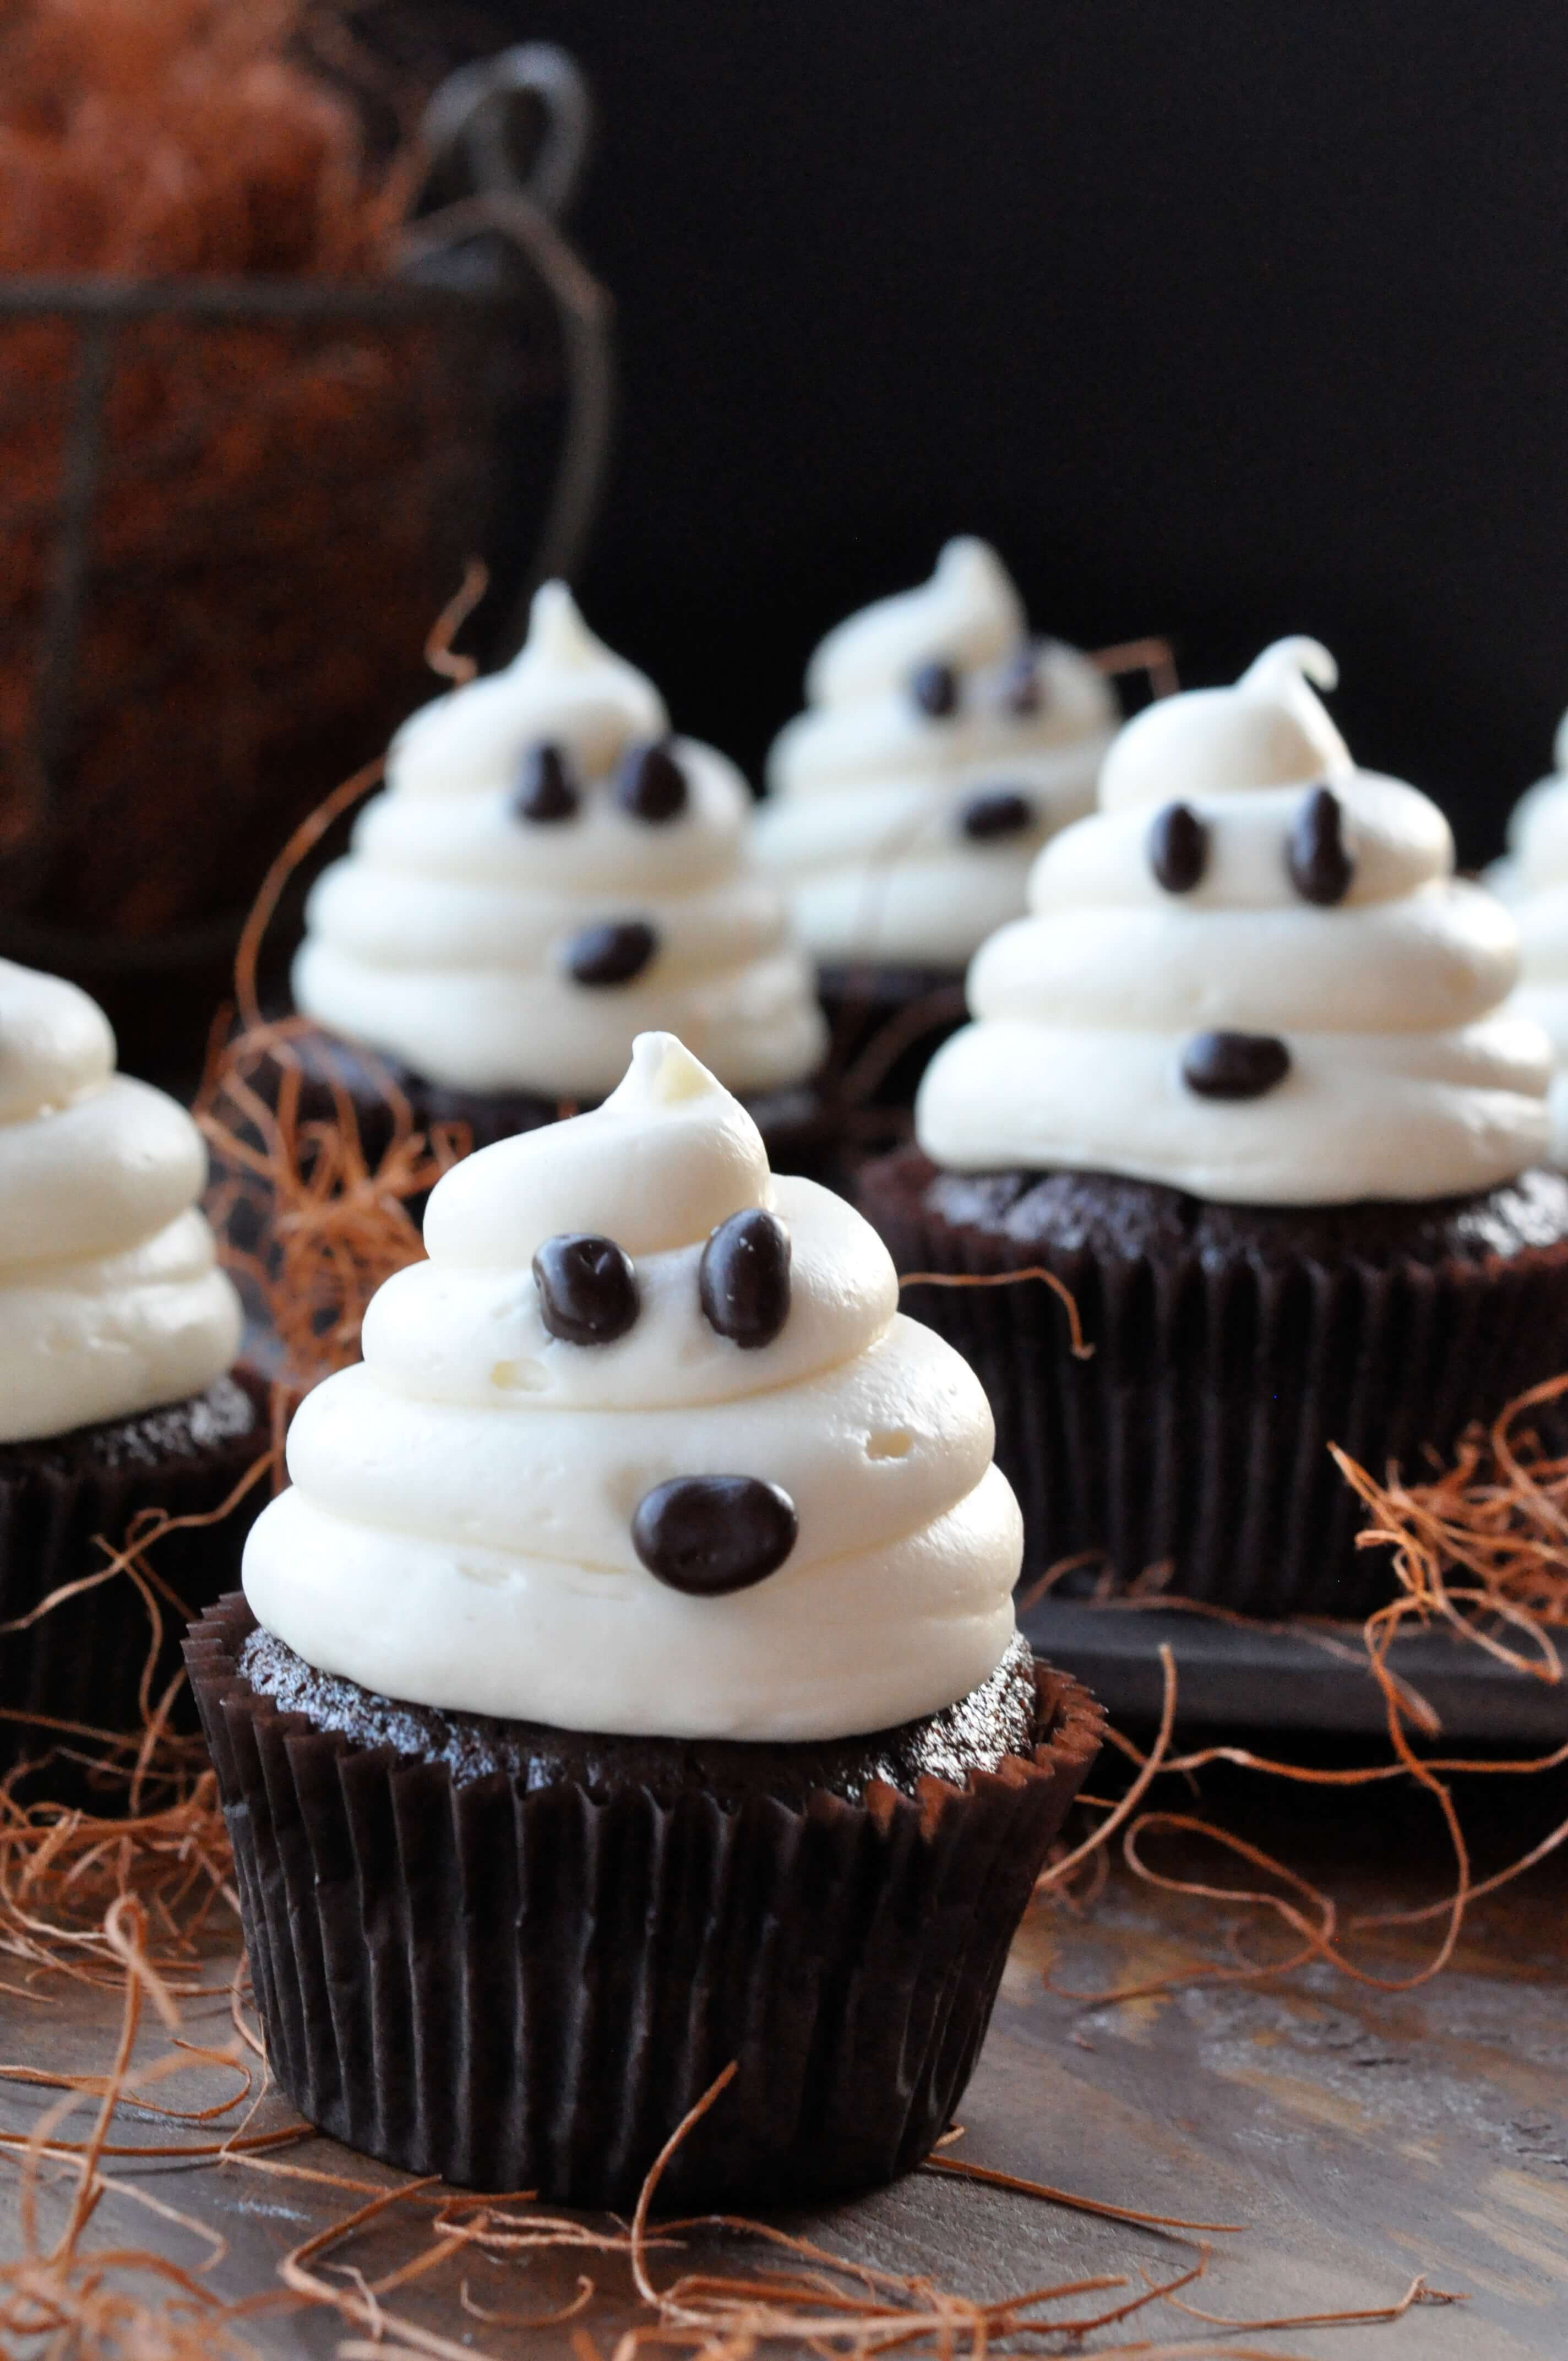 Cupcakes De Halloween  Halloween Ghosts on Carrot Cake Recipe—Fast and Easy